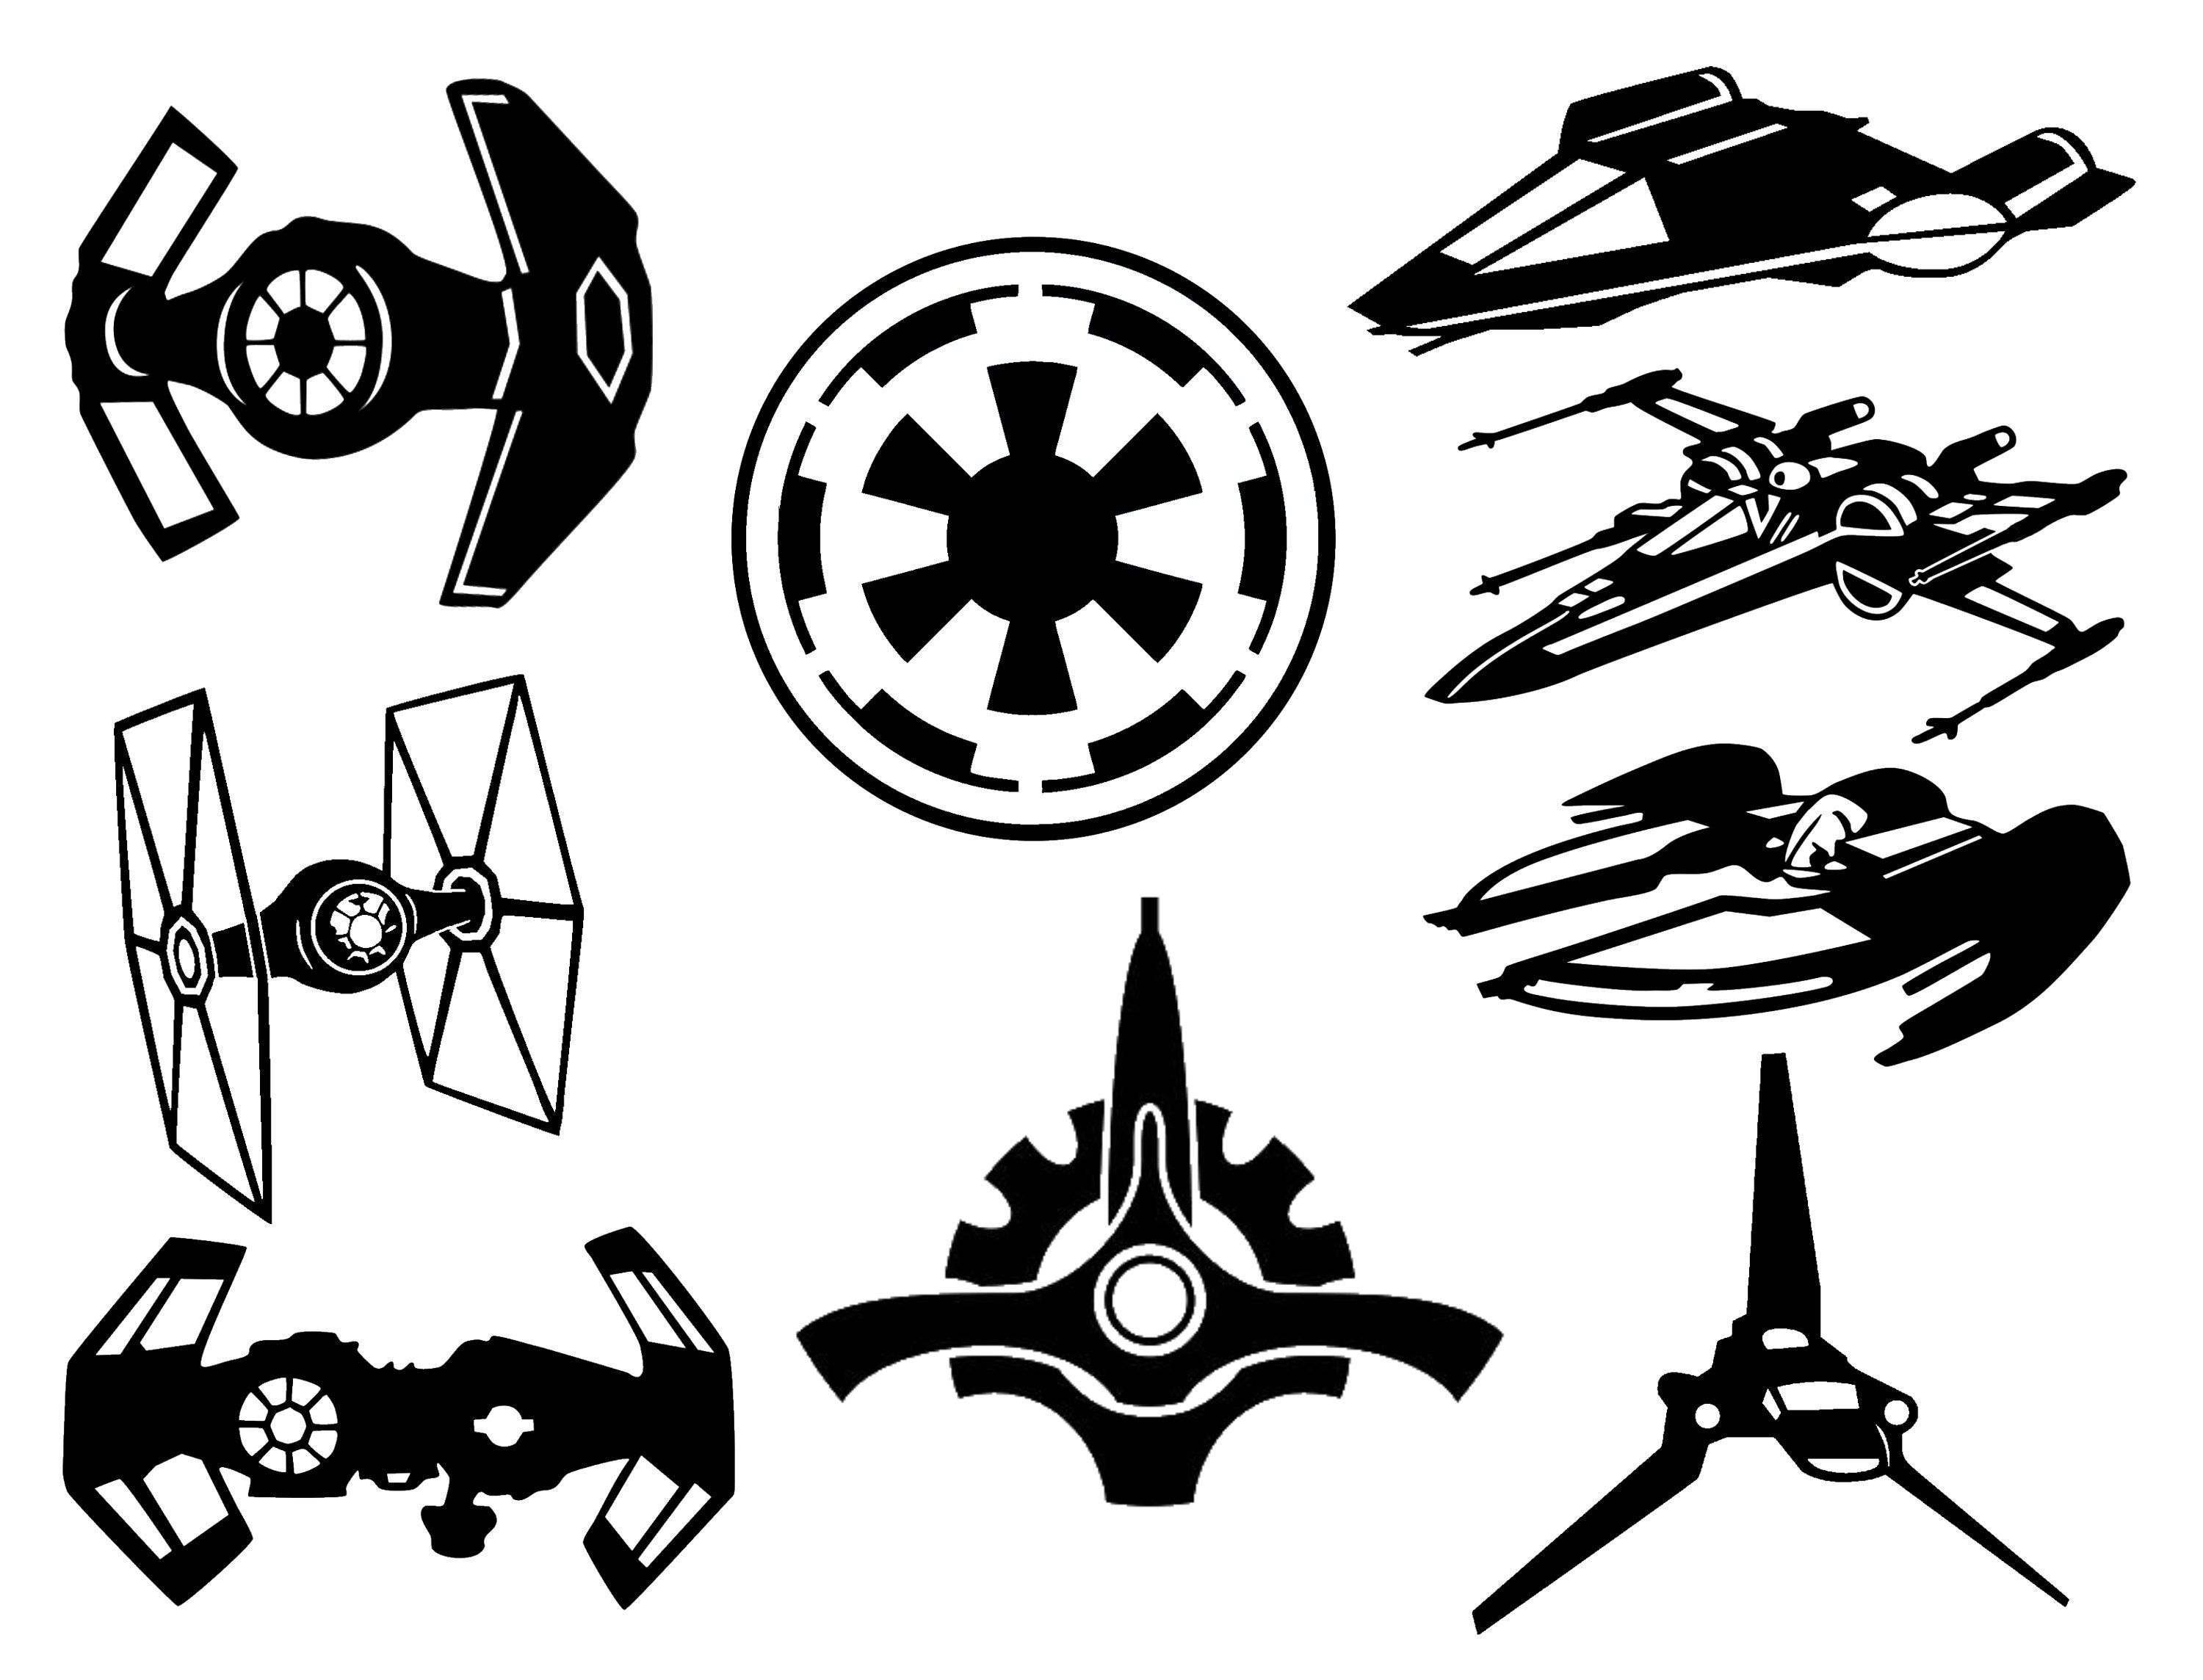 Star Wars Decal Collection 7 Spacecraft And 2 Symbols Vinyl Sticker Car Truck Laptop Wall Window Or Any Smooth Su Star Wars Decal Nature Decal Butterfly Decal [ 2288 x 3000 Pixel ]